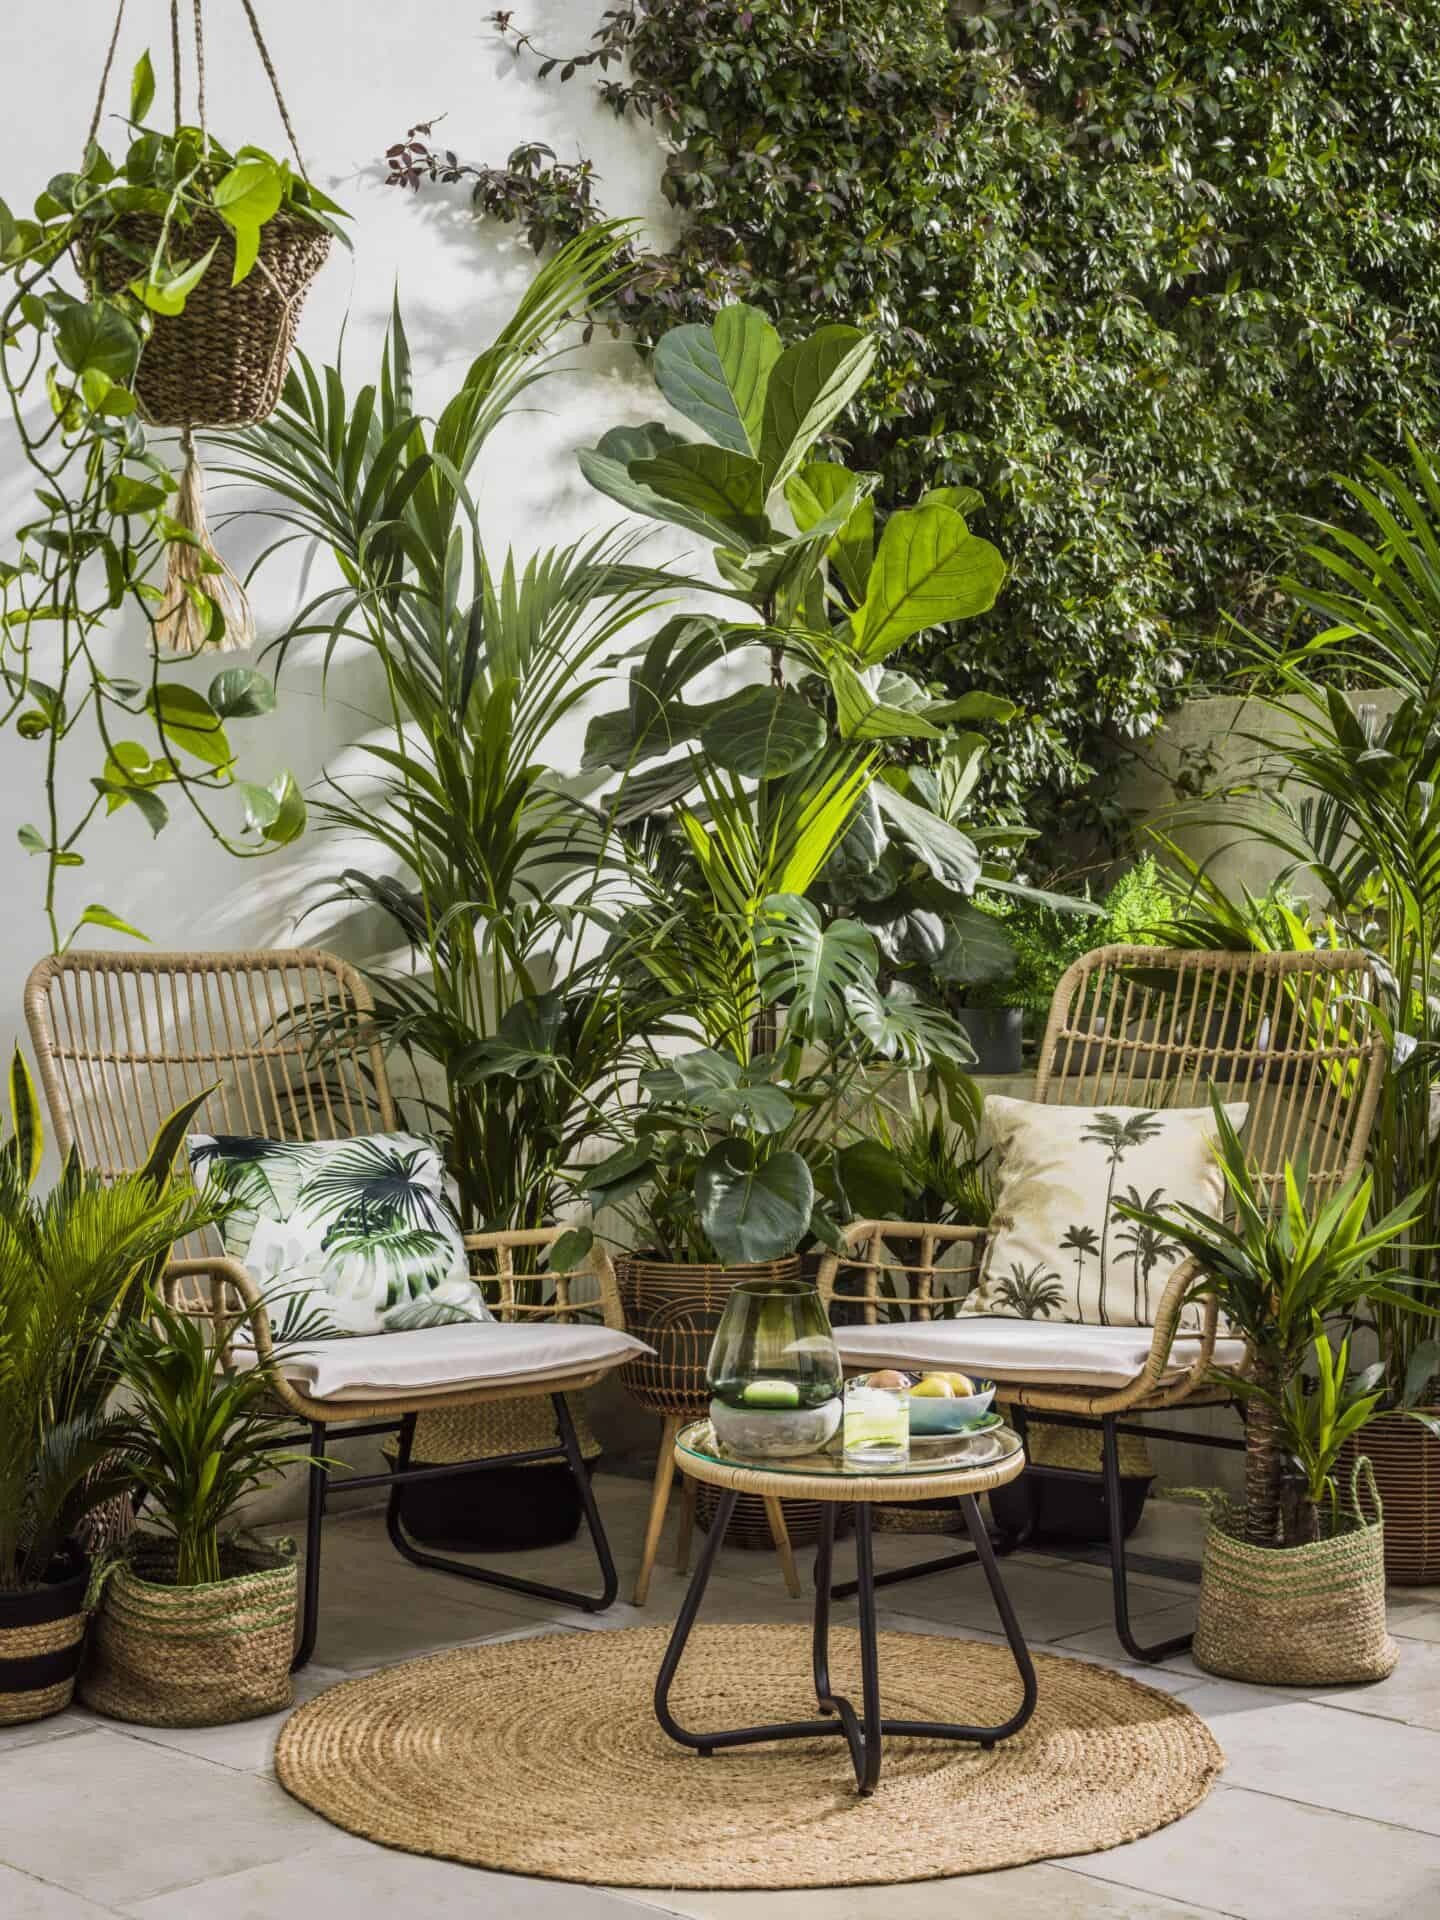 Botanist is a SS20 interiors trend by Very.co.uk that features nature in interiors. This small patio is full of furniture and accessories in natural materials and overflowing with leafy green plants